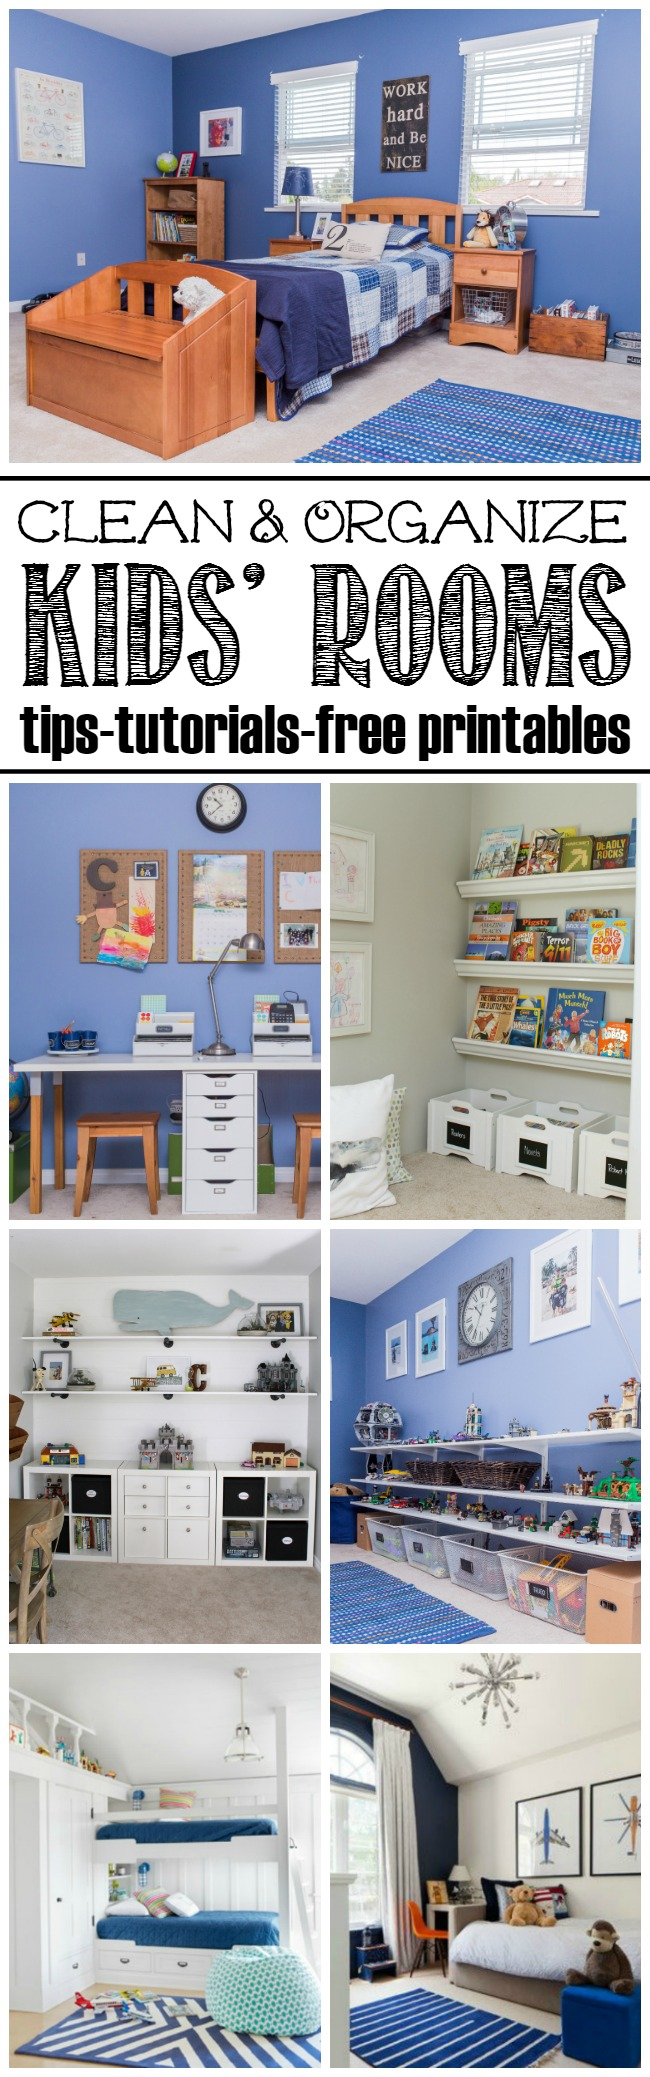 How to get your kids' rooms cleaned and organized. Free printables and lots of tips and tricks included!